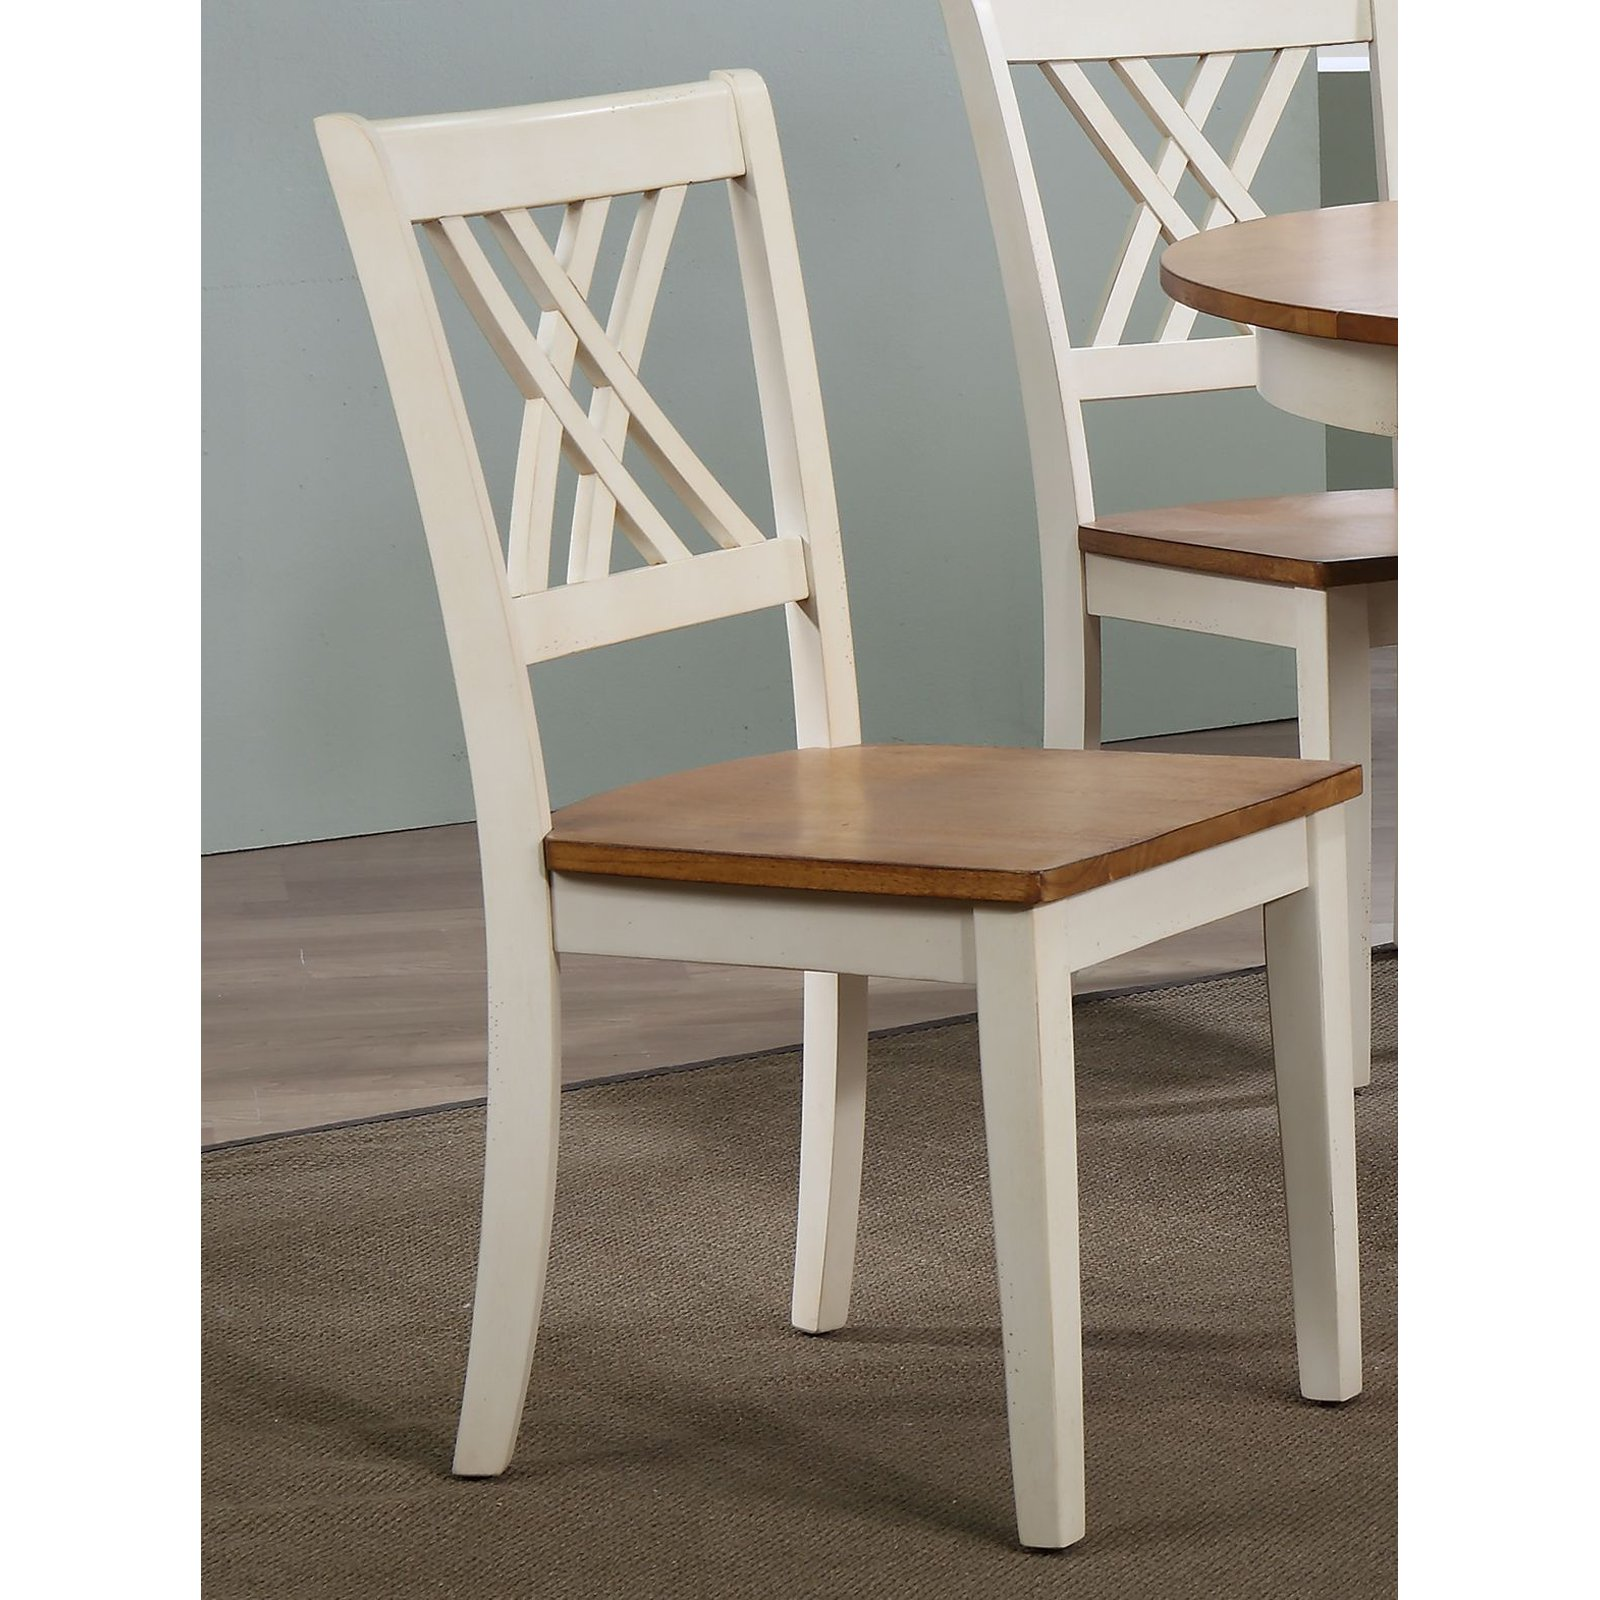 Brilliant Iconic Furniture Double X Back Dining Chair Set Of 2 Beatyapartments Chair Design Images Beatyapartmentscom